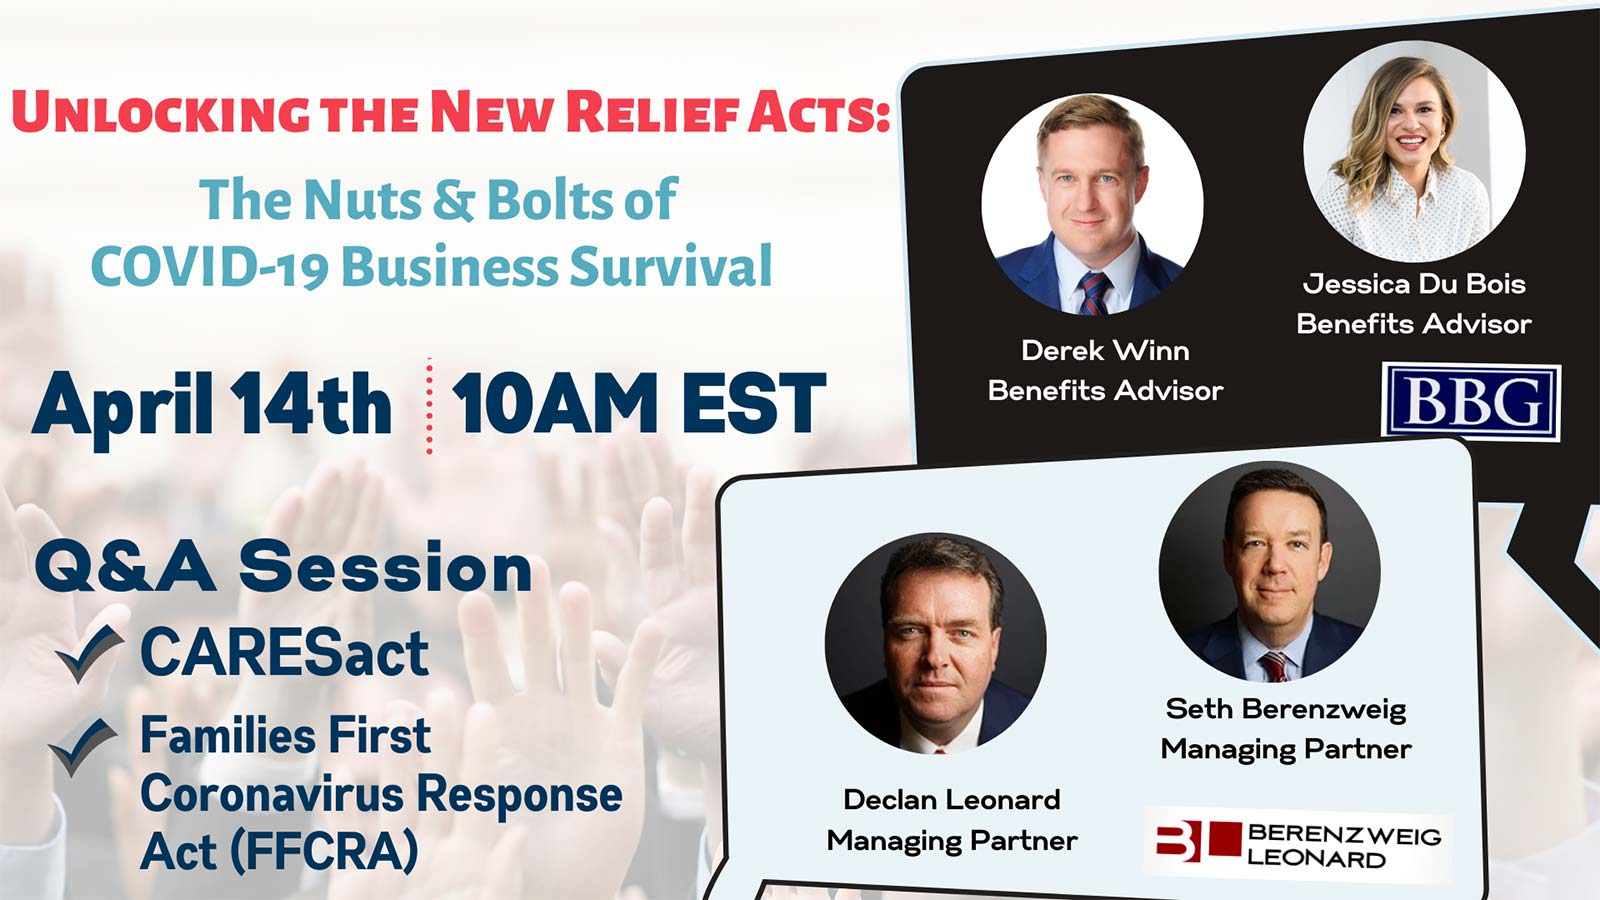 Unlocking the New Relief Acts: The Nuts & Bolts of COVID-19 Business Survival webinar flyer